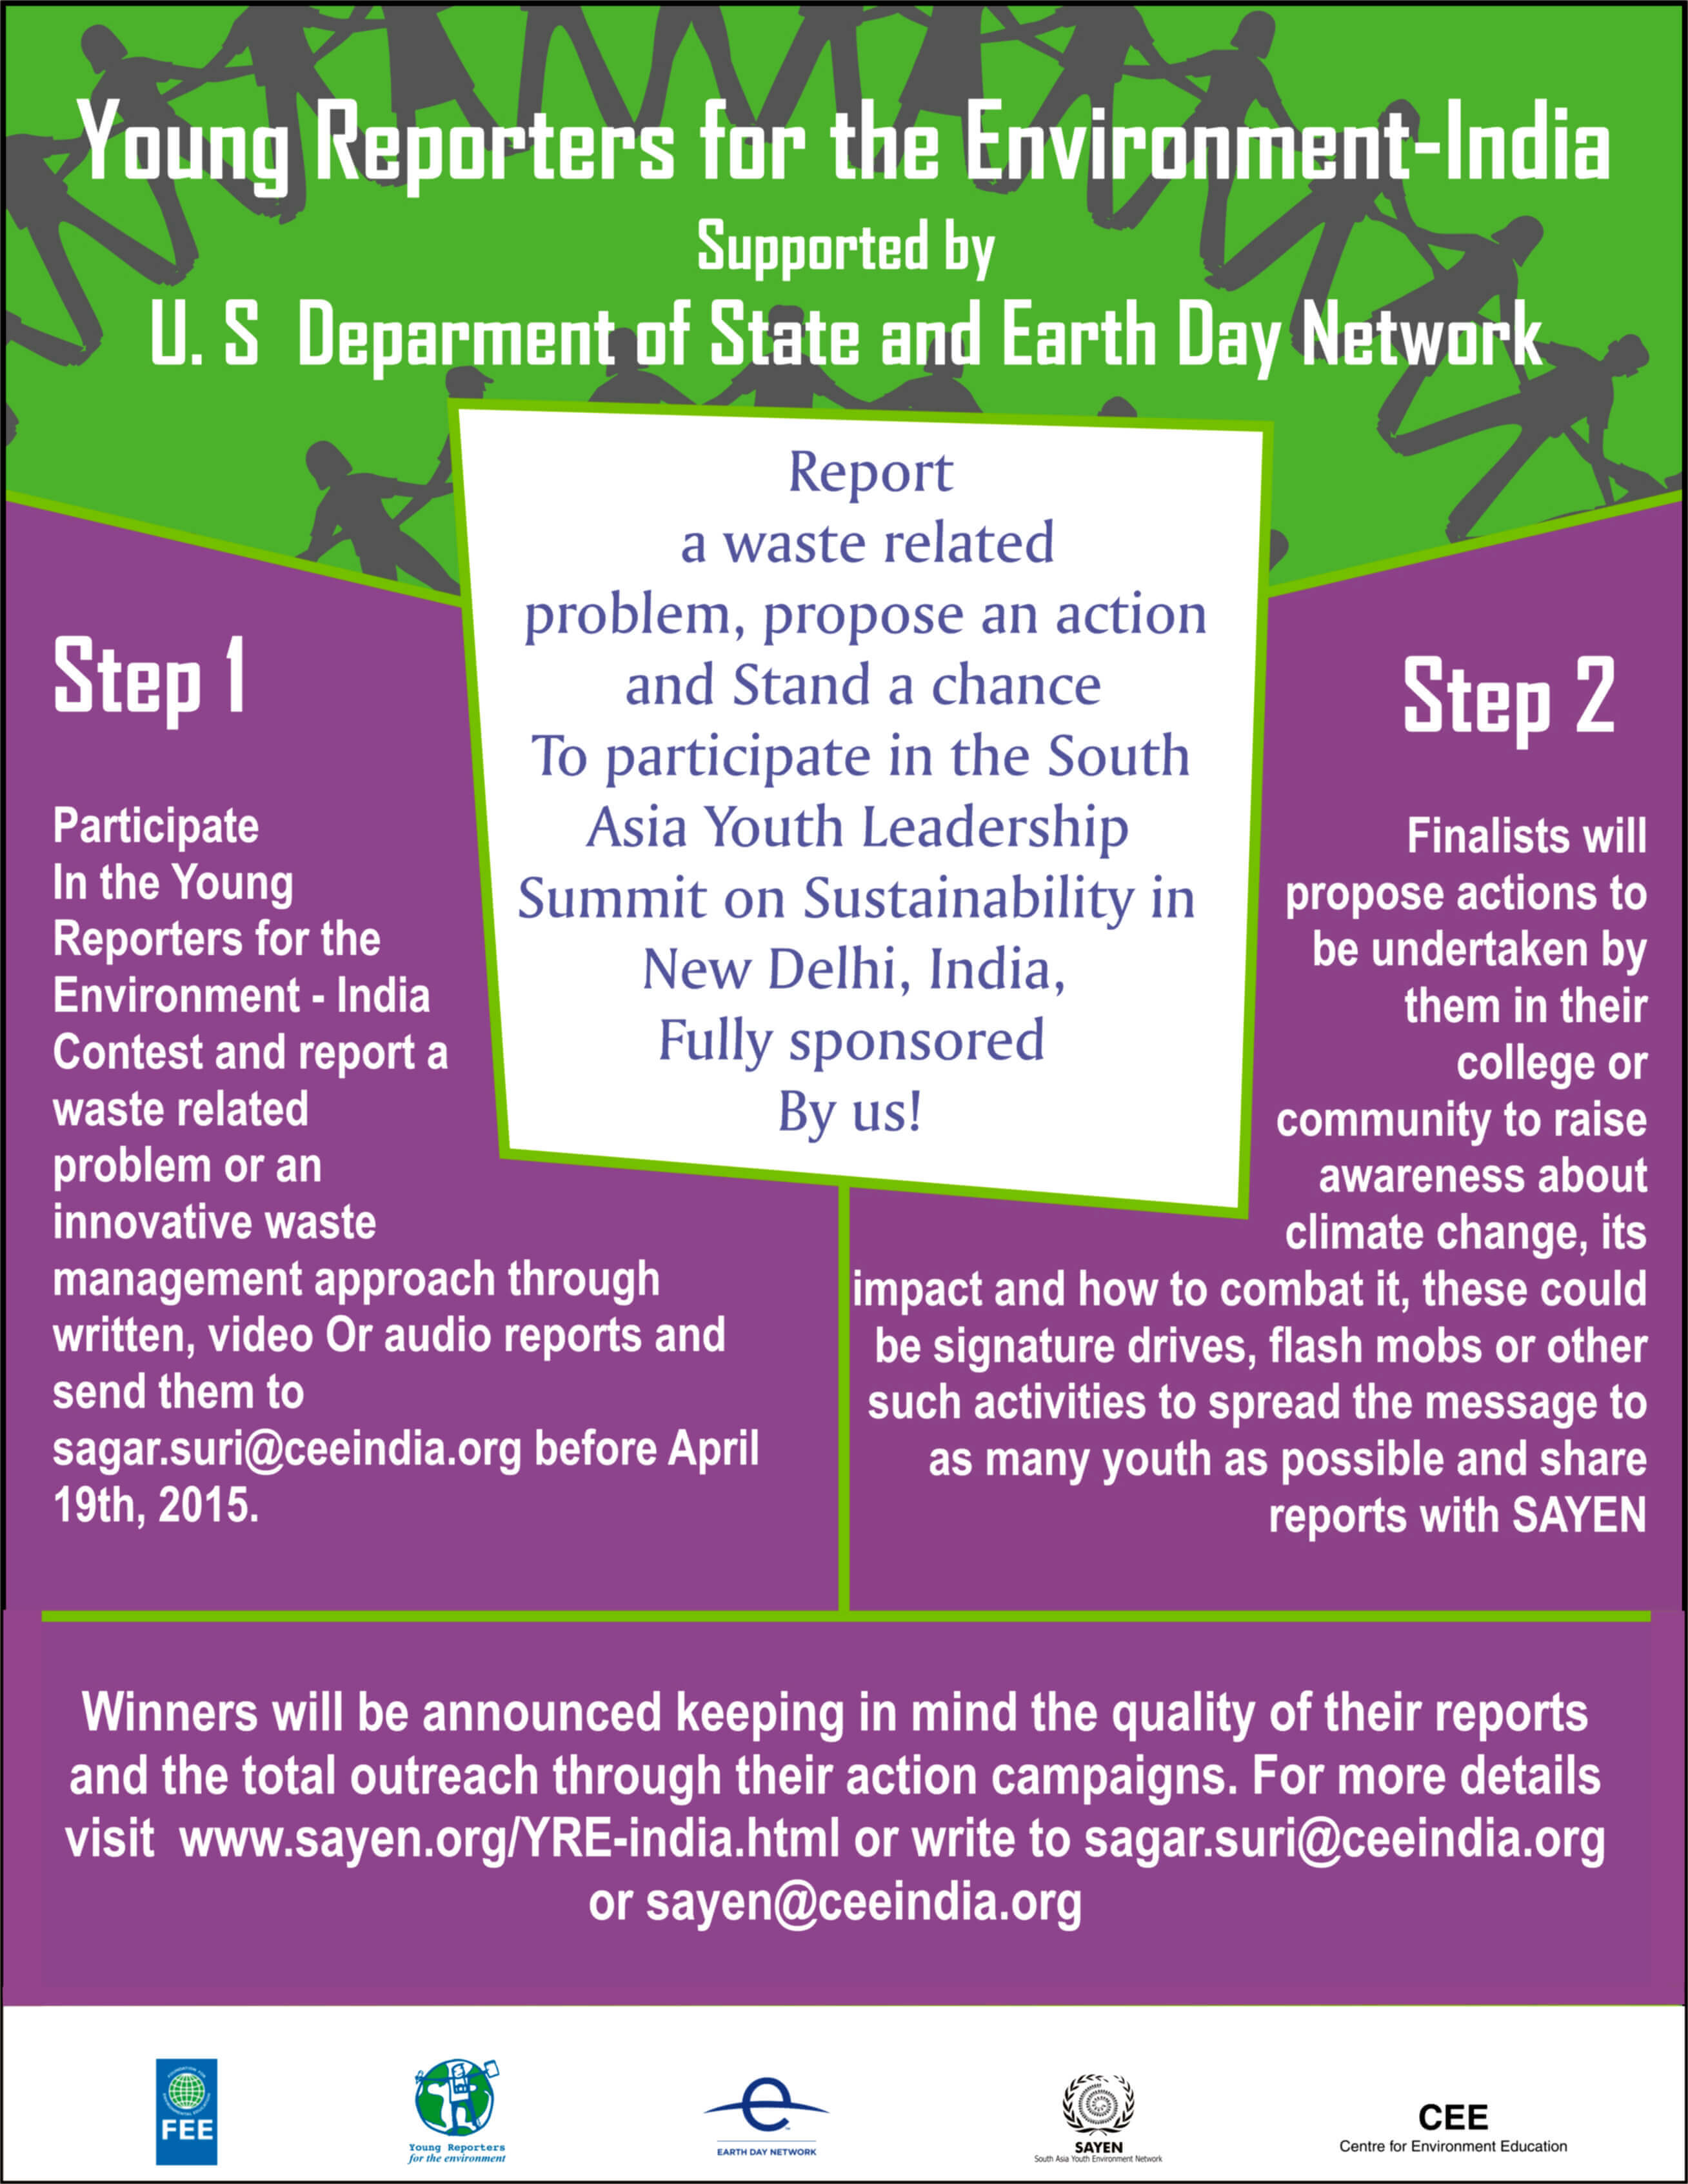 Apply for the South Asia Youth Leadership Summit in India